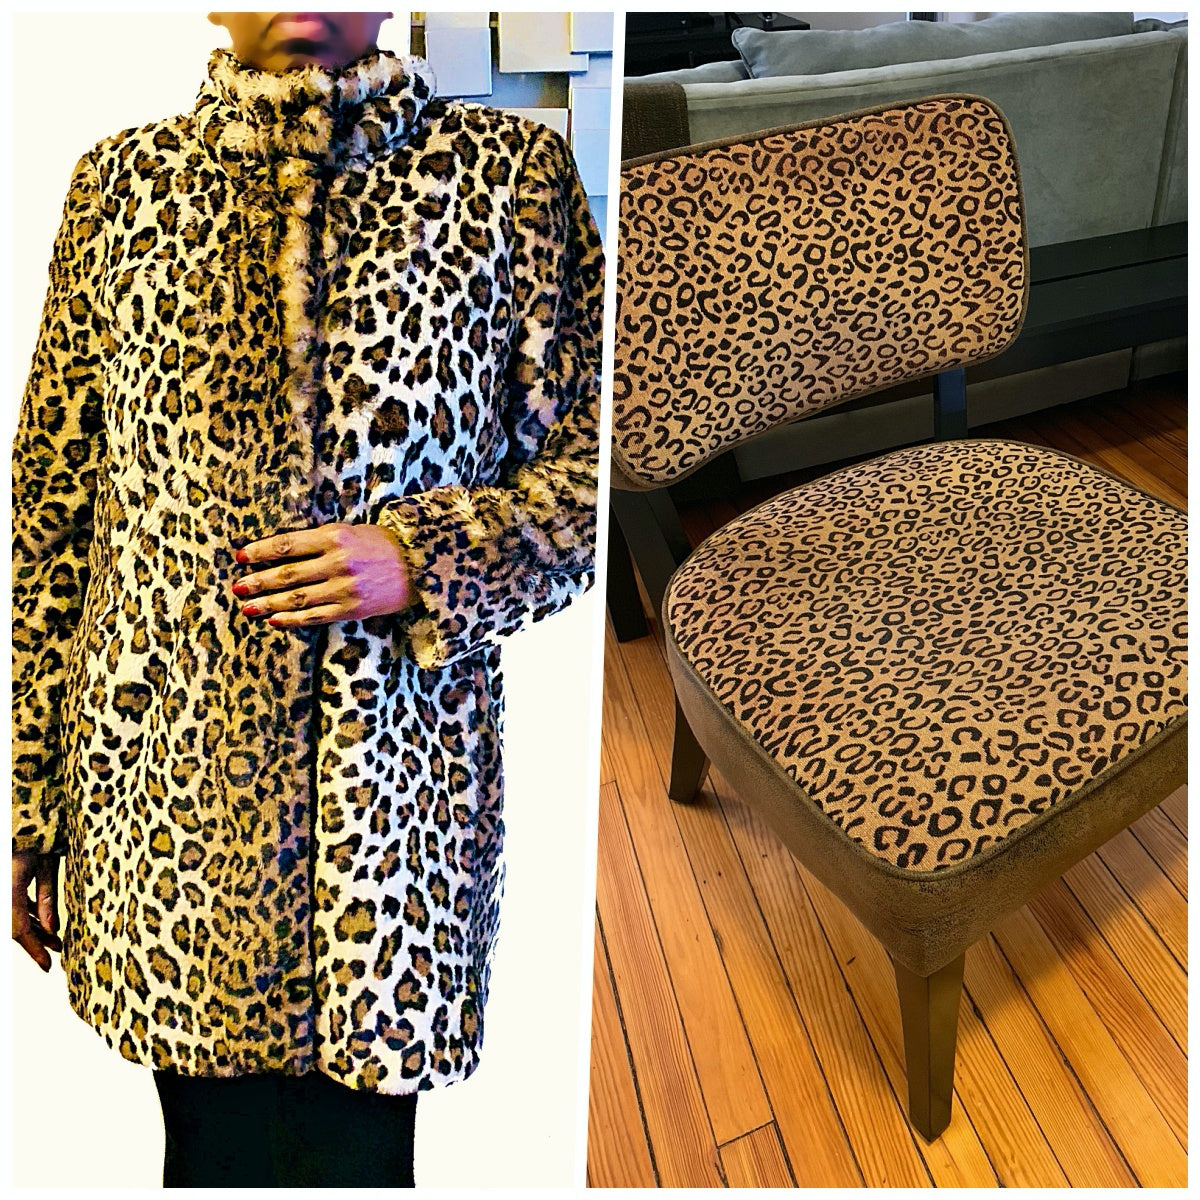 Juliet in Leopard Print Coat from Loft - World Menagerie Cheetah Print Slipper Chair from Wayfair